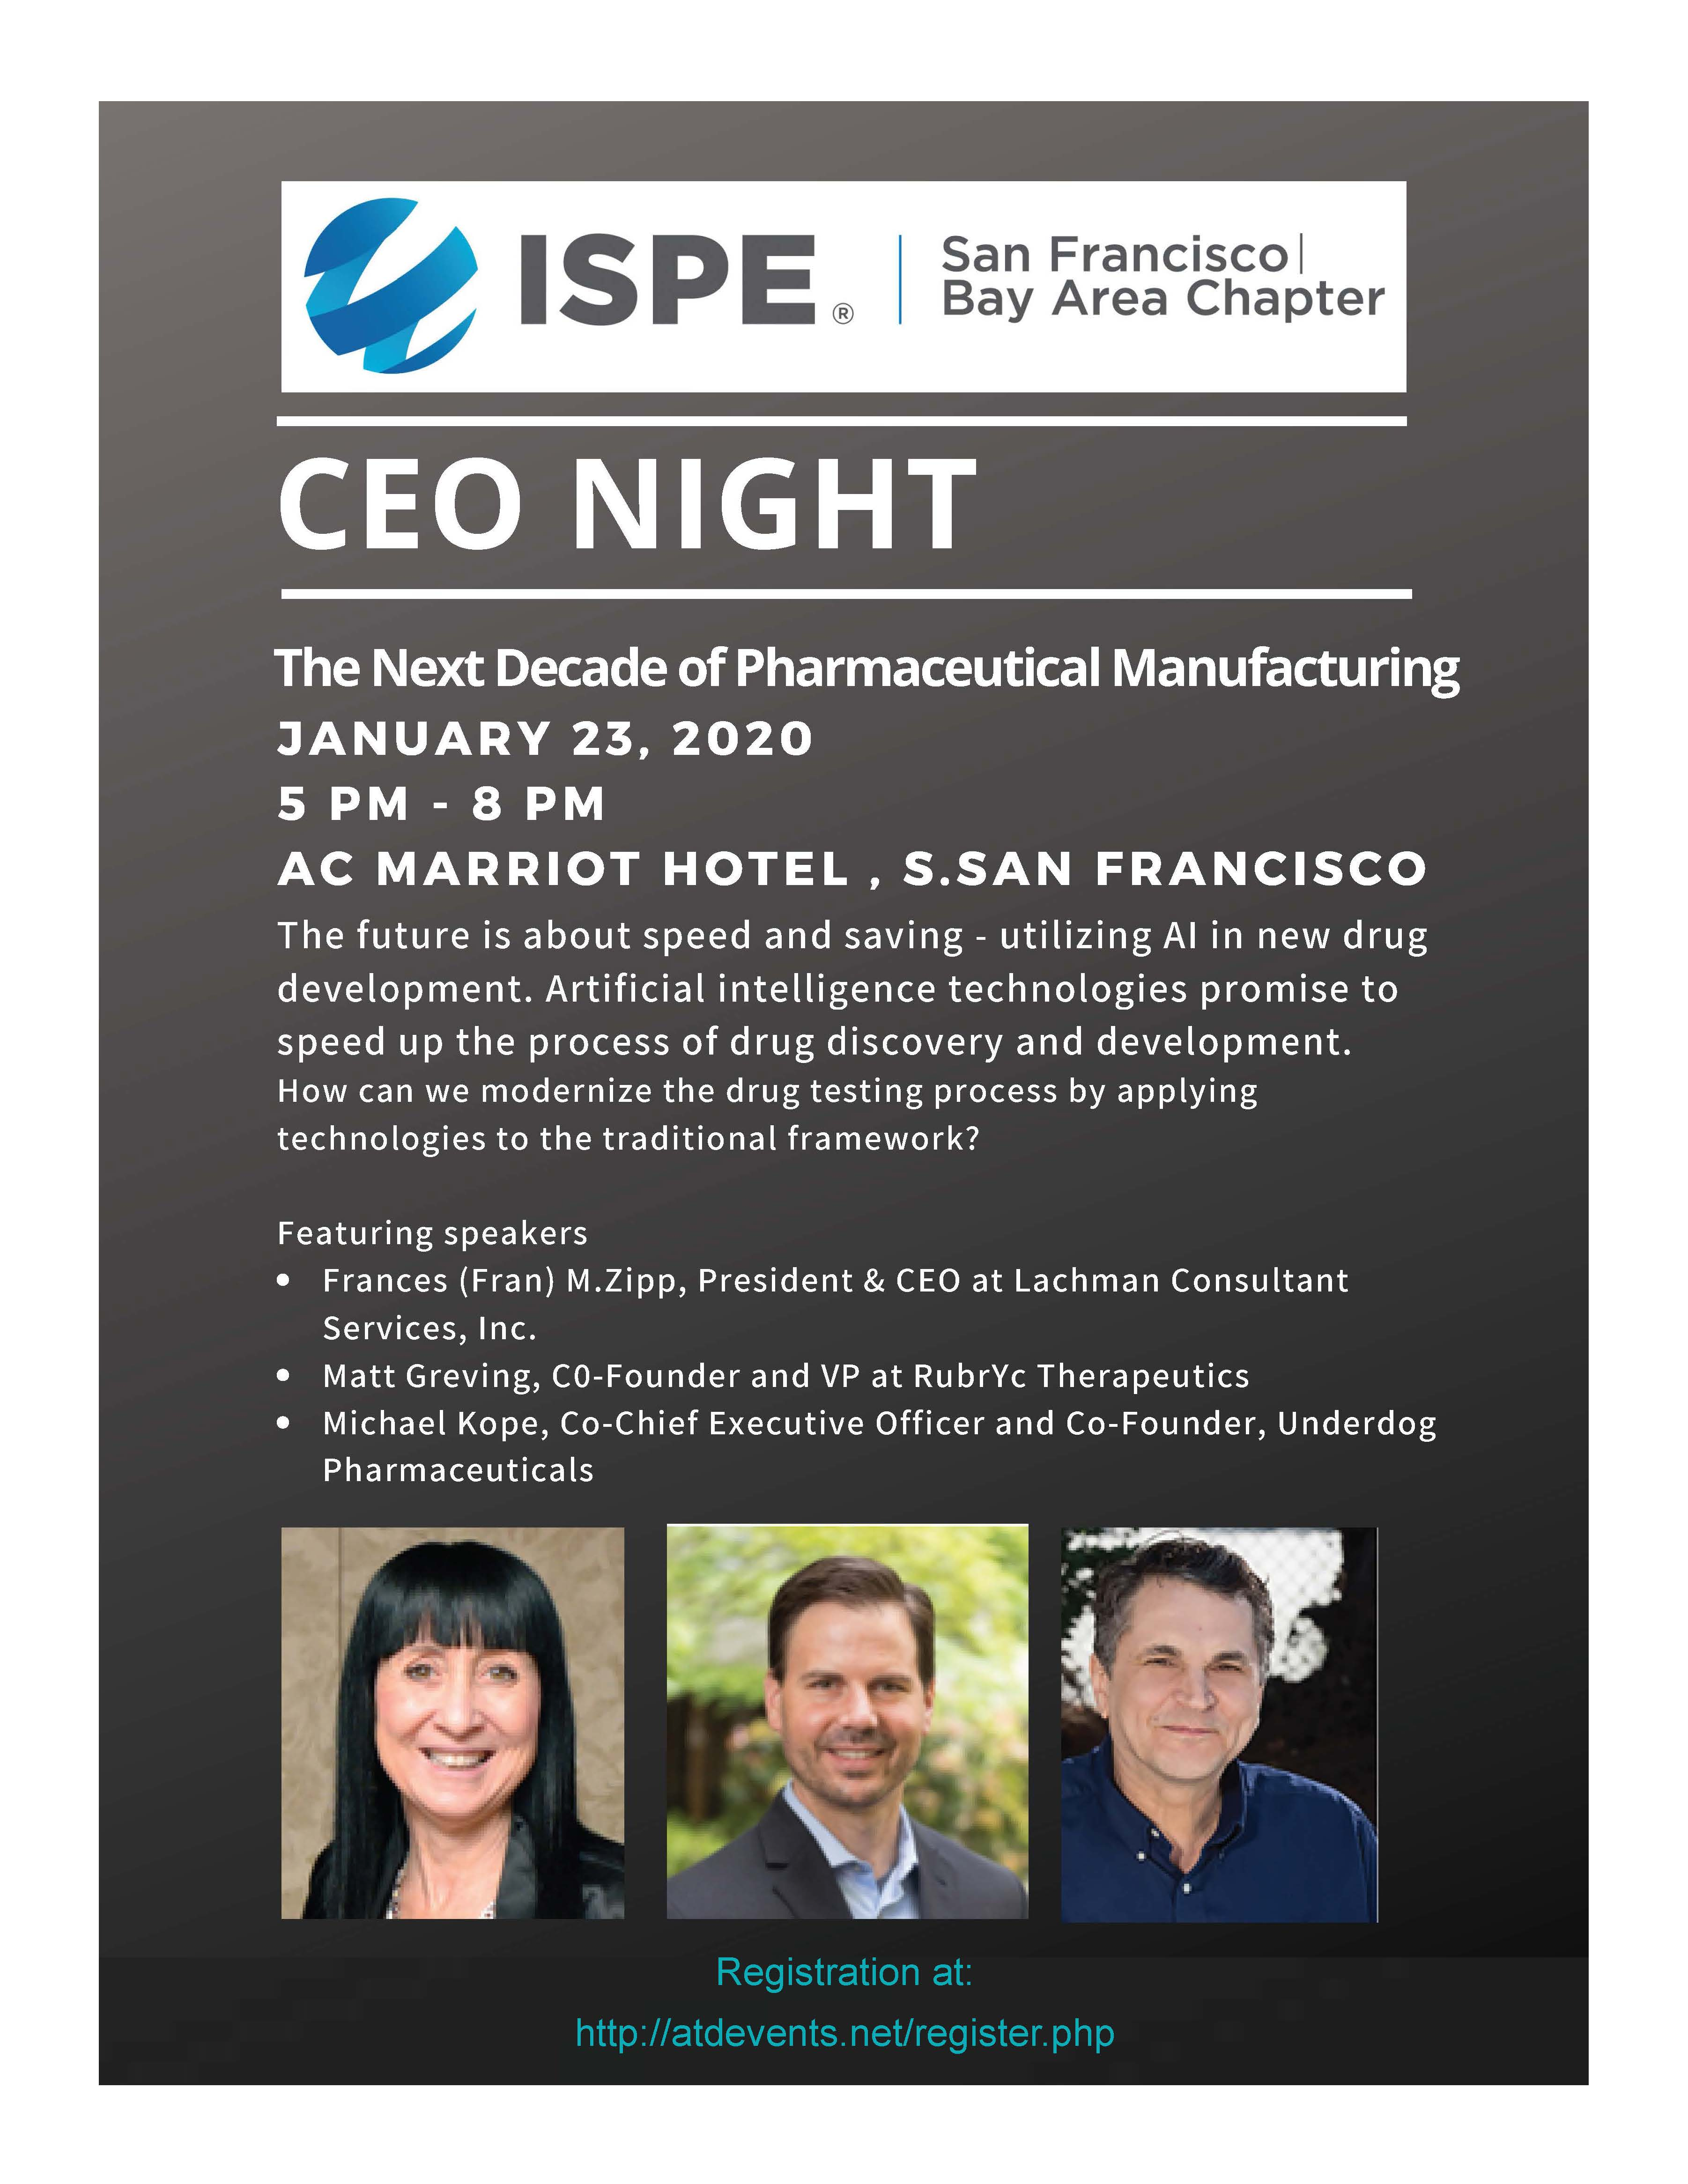 ISPE SF CEO Night Graphic